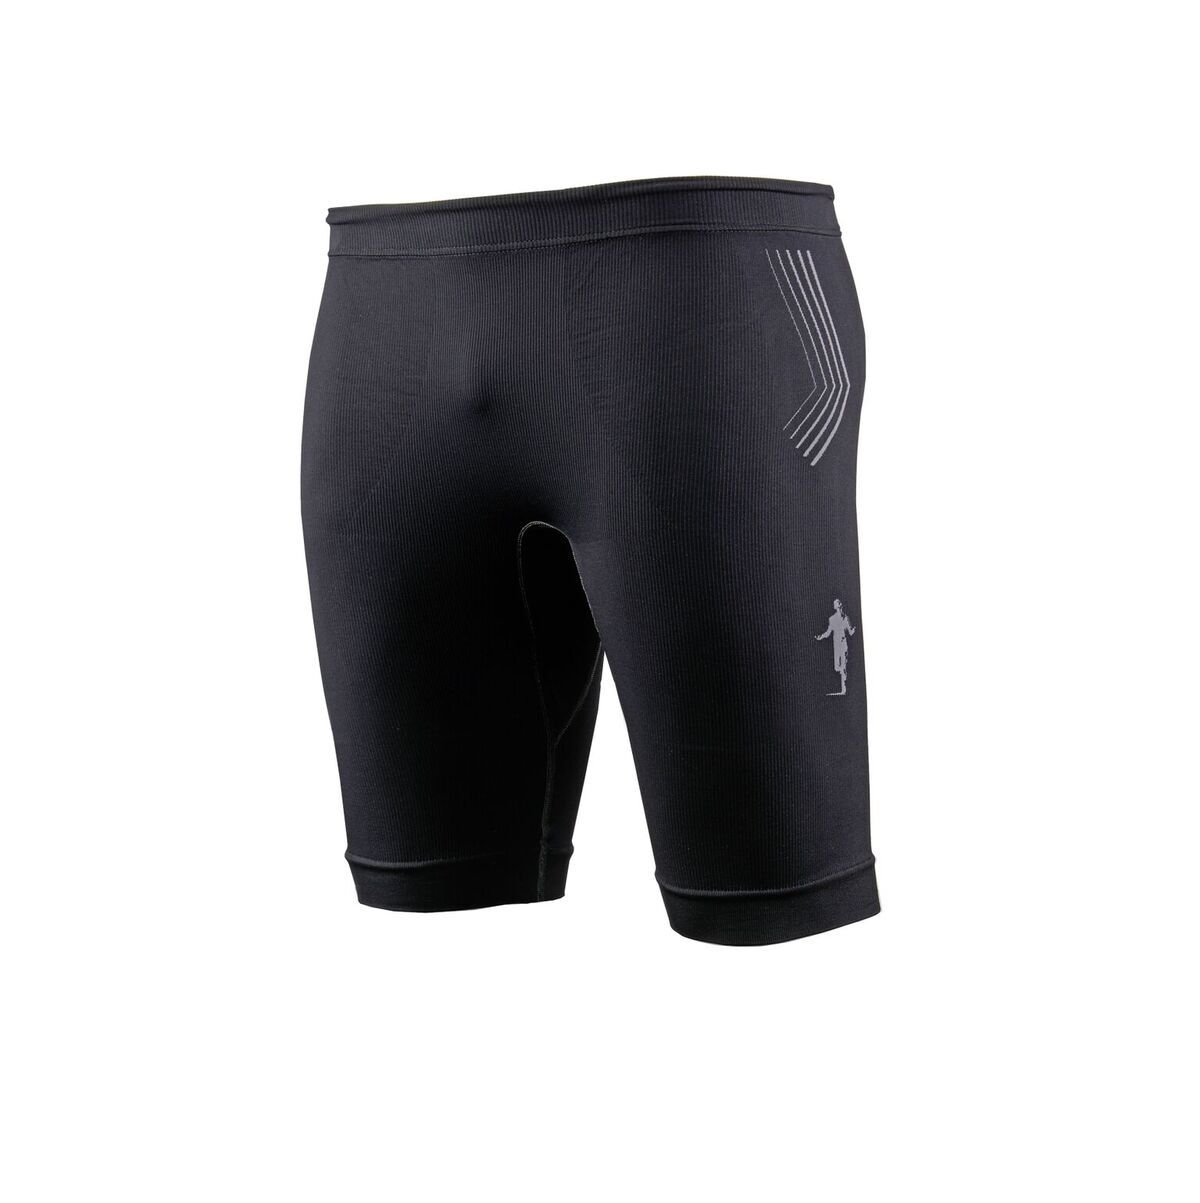 Thonimara Mid-Tight (Schwarz)